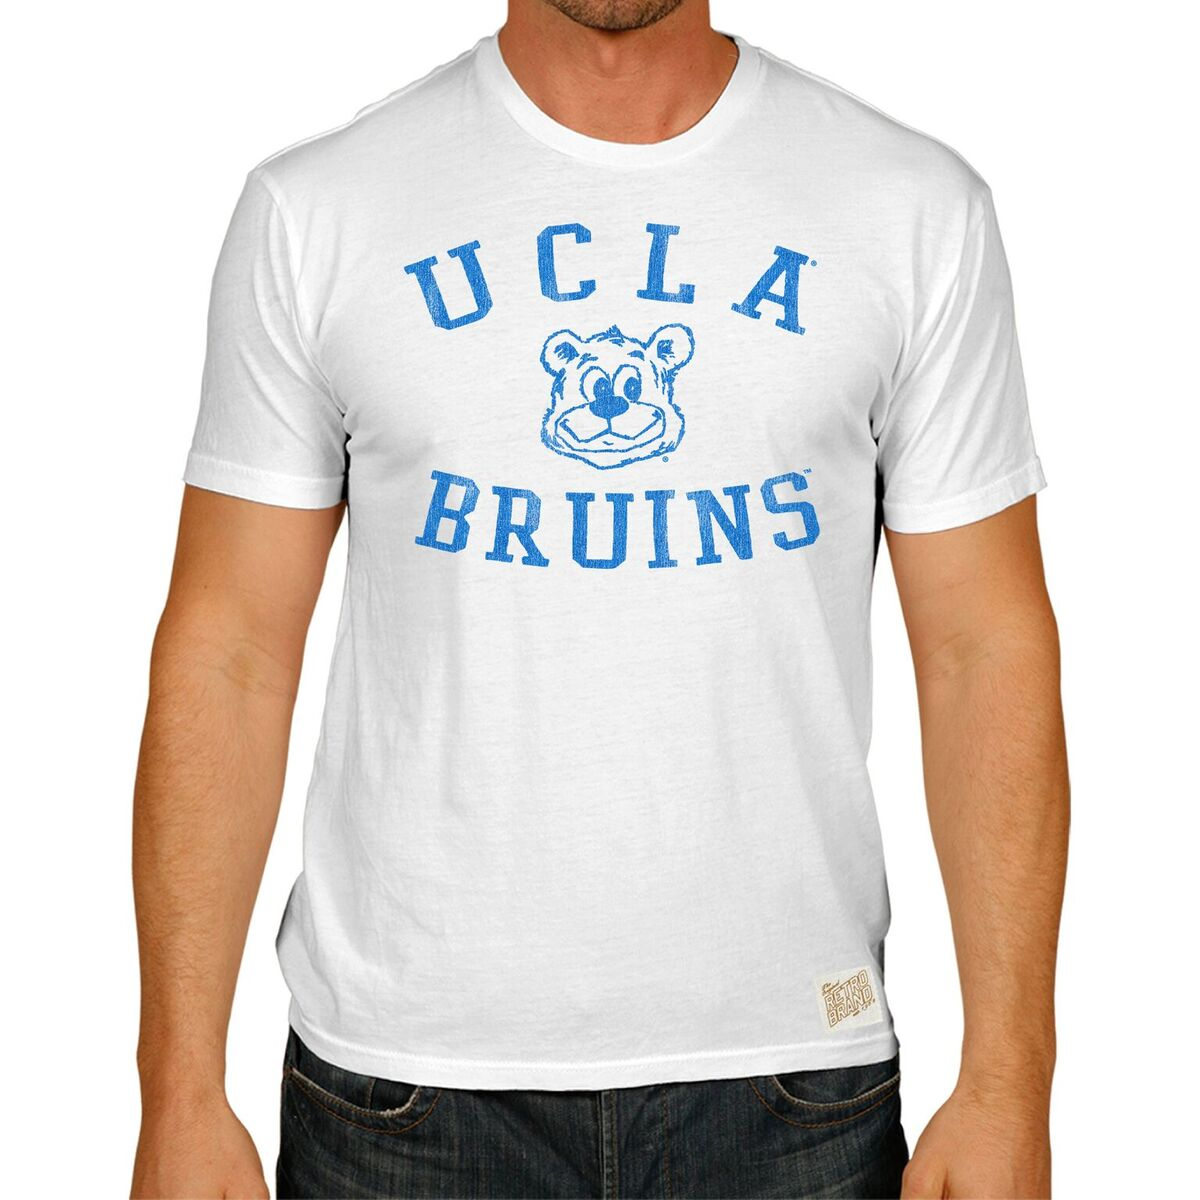 UCLA Bruins Men's Short Sleeve Vintage Tee